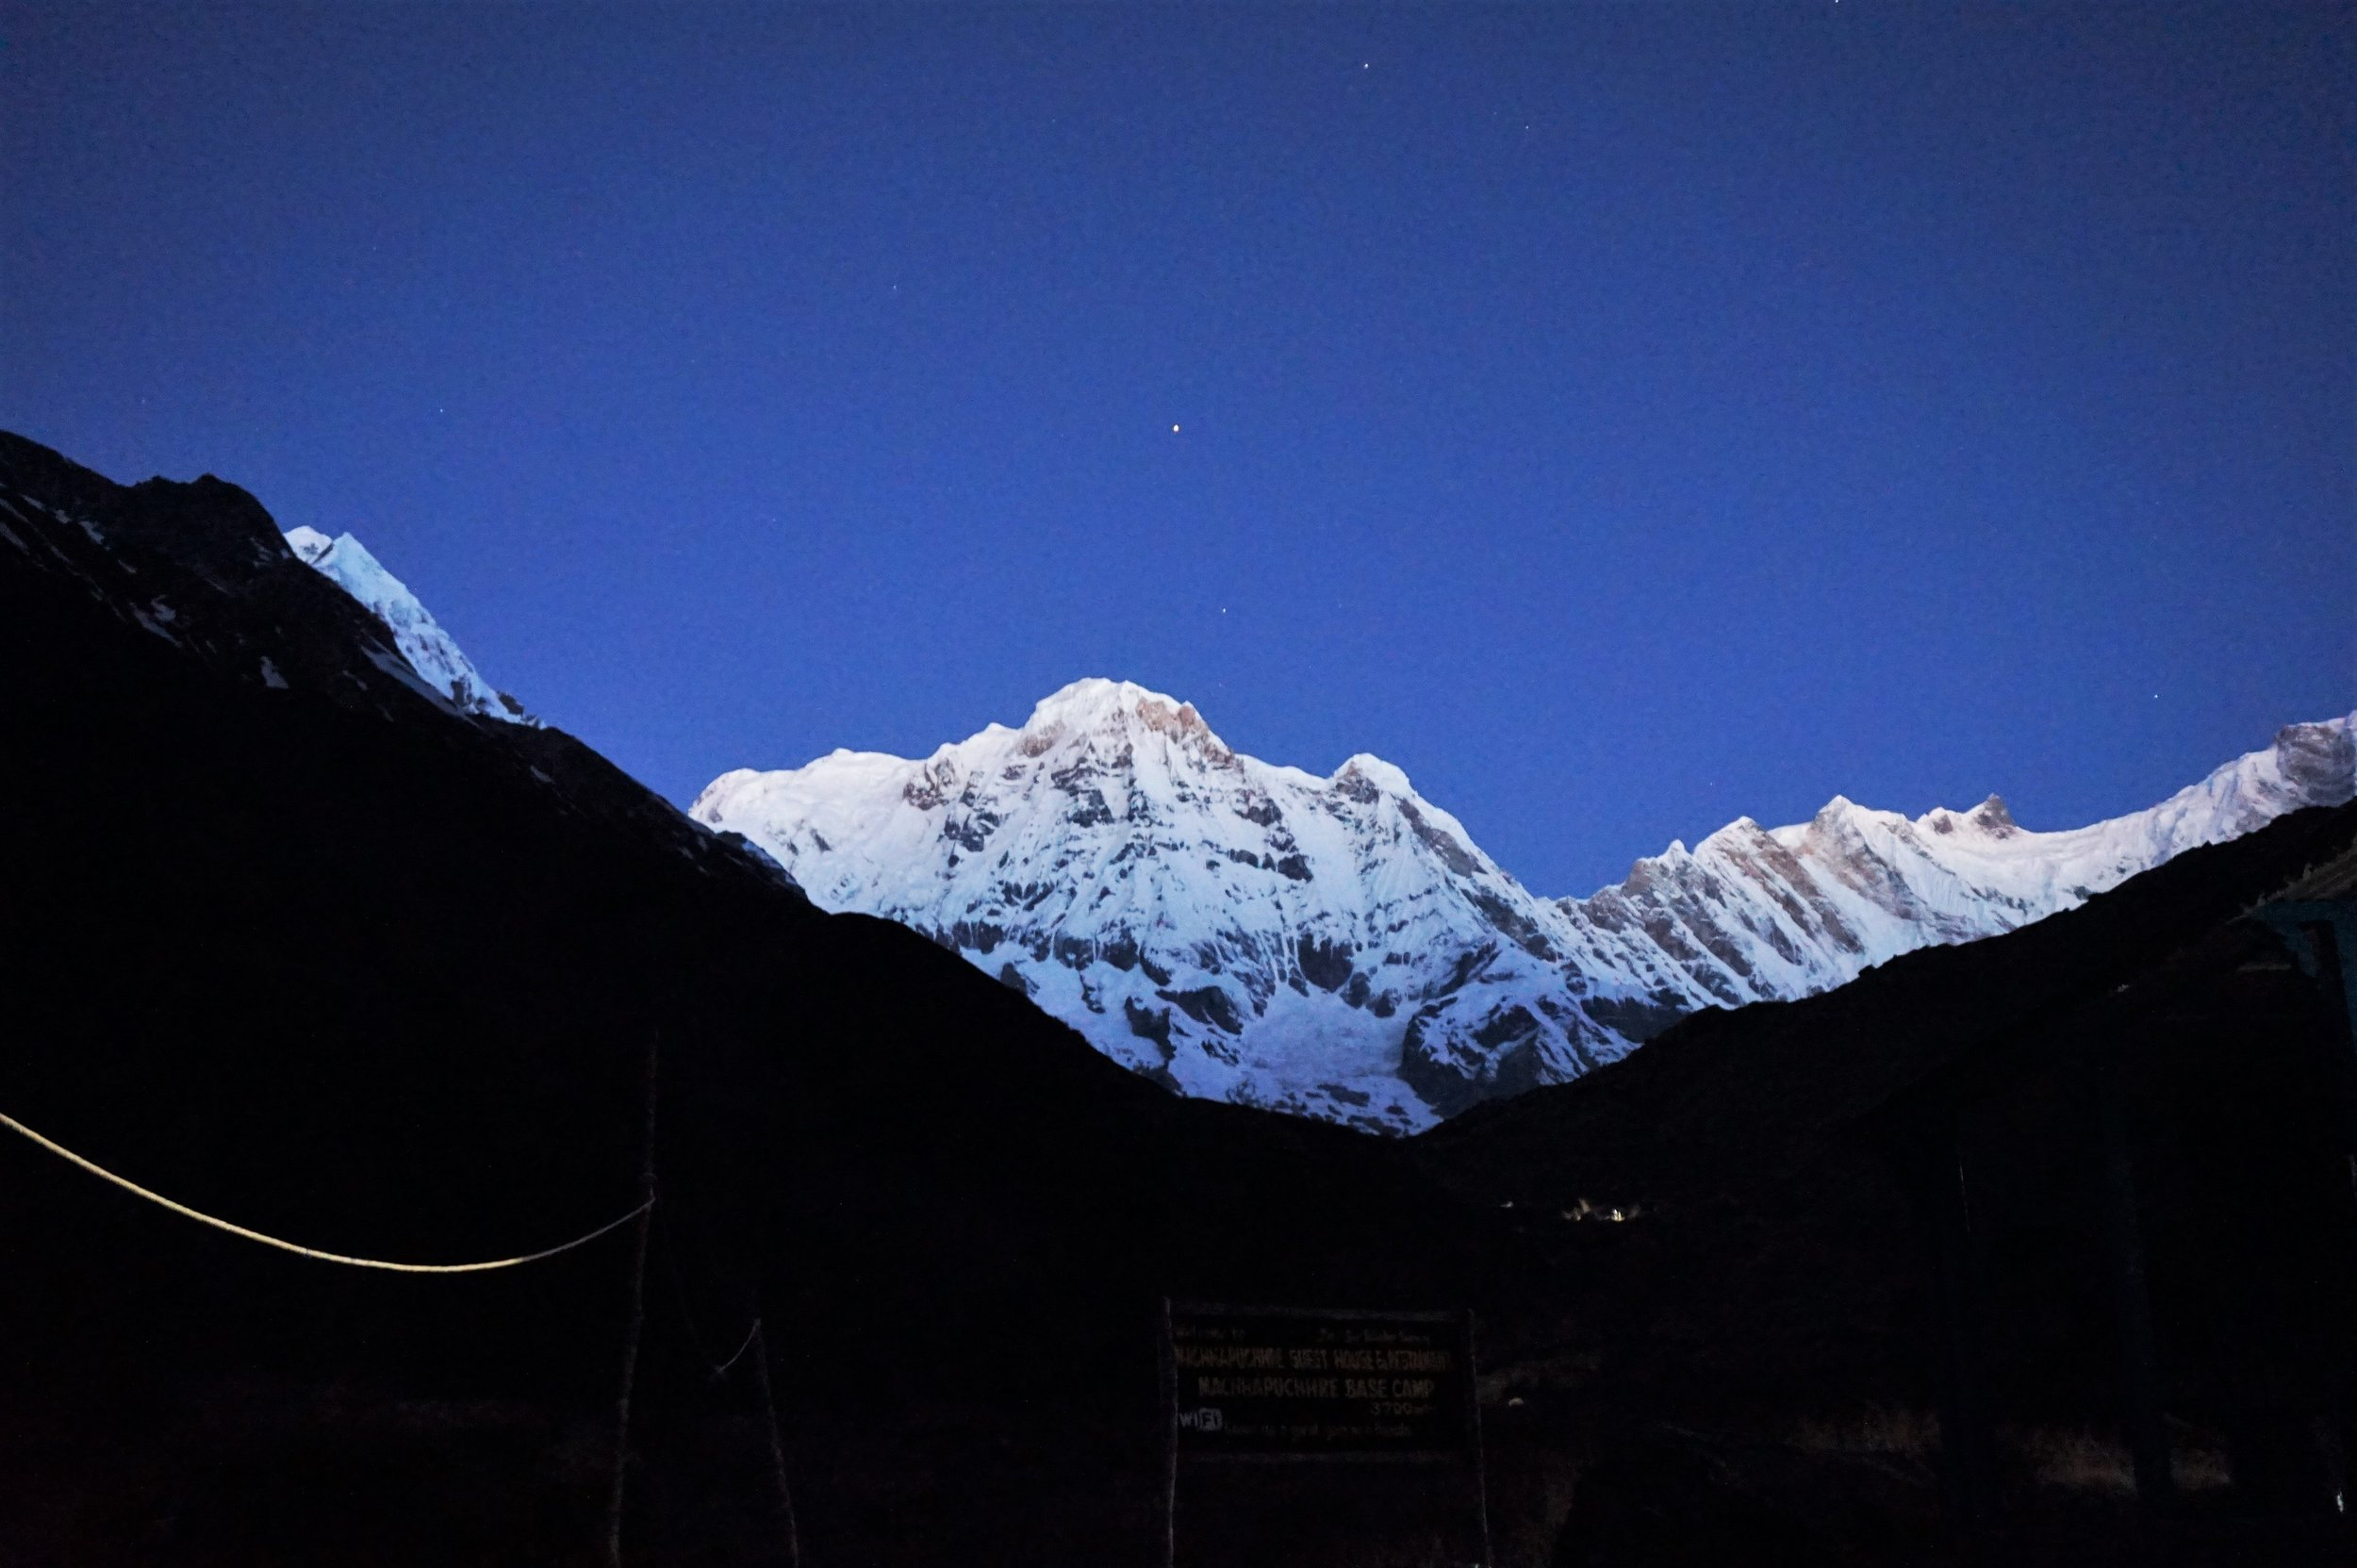 Early morning views of Annapurna peak from the Annapurna Base Camp.